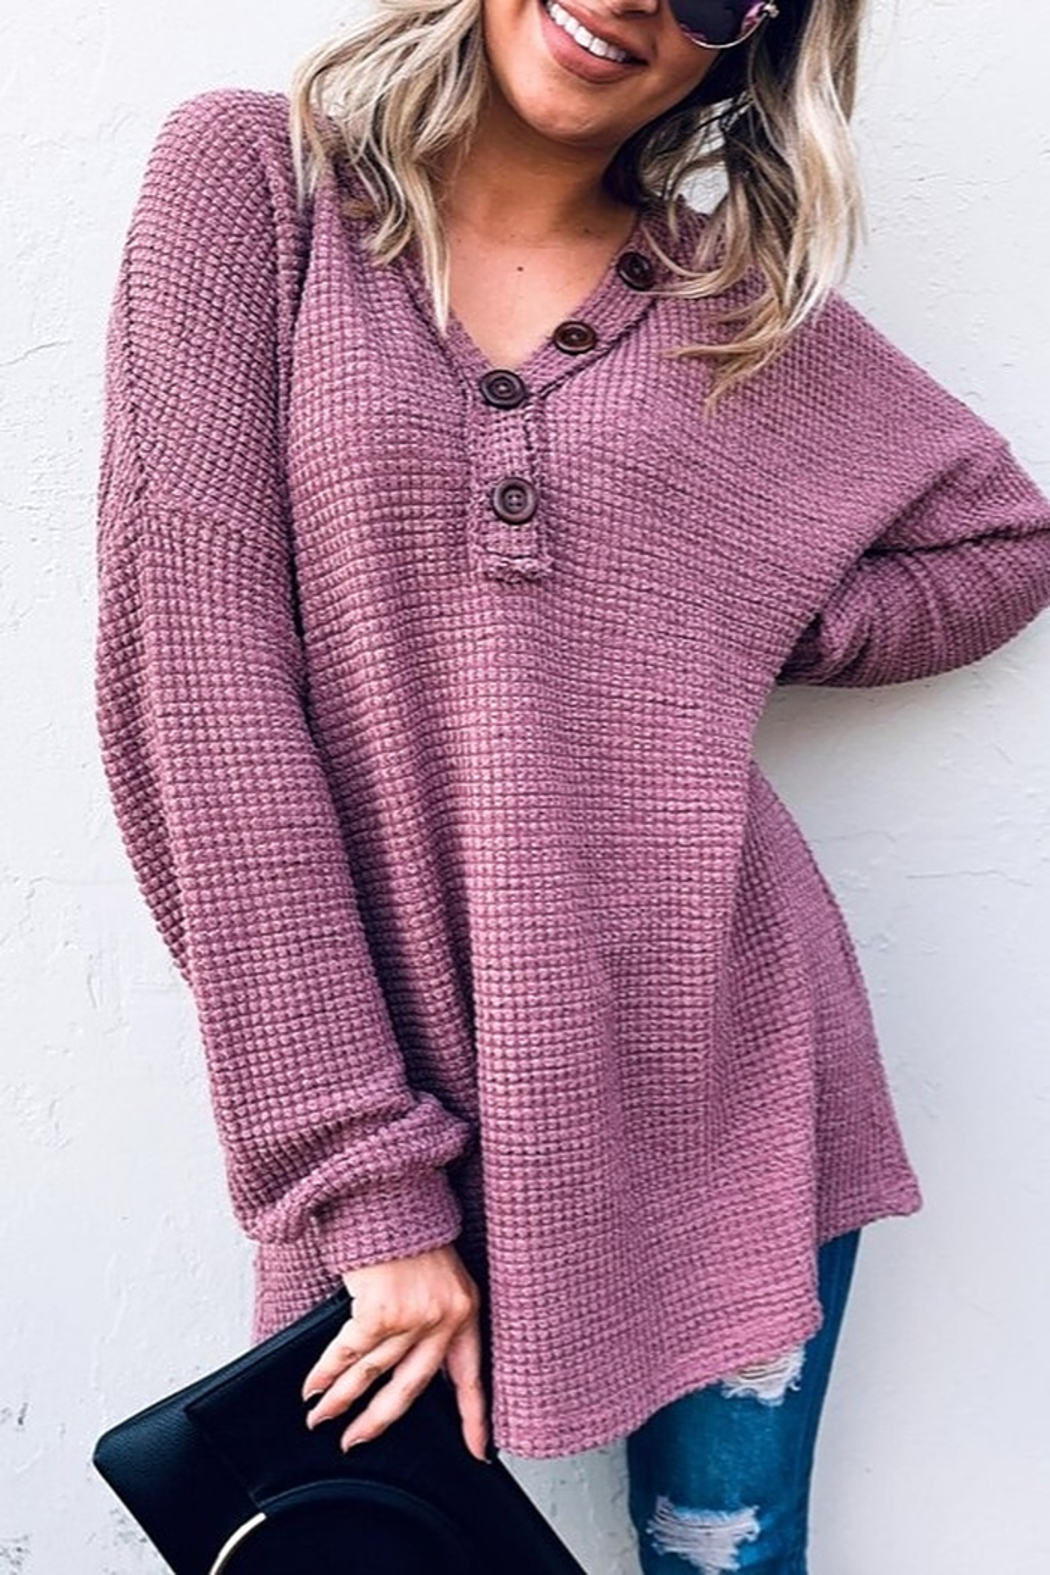 And the Why V Neck Casual Knit Tunic Top - Main Image